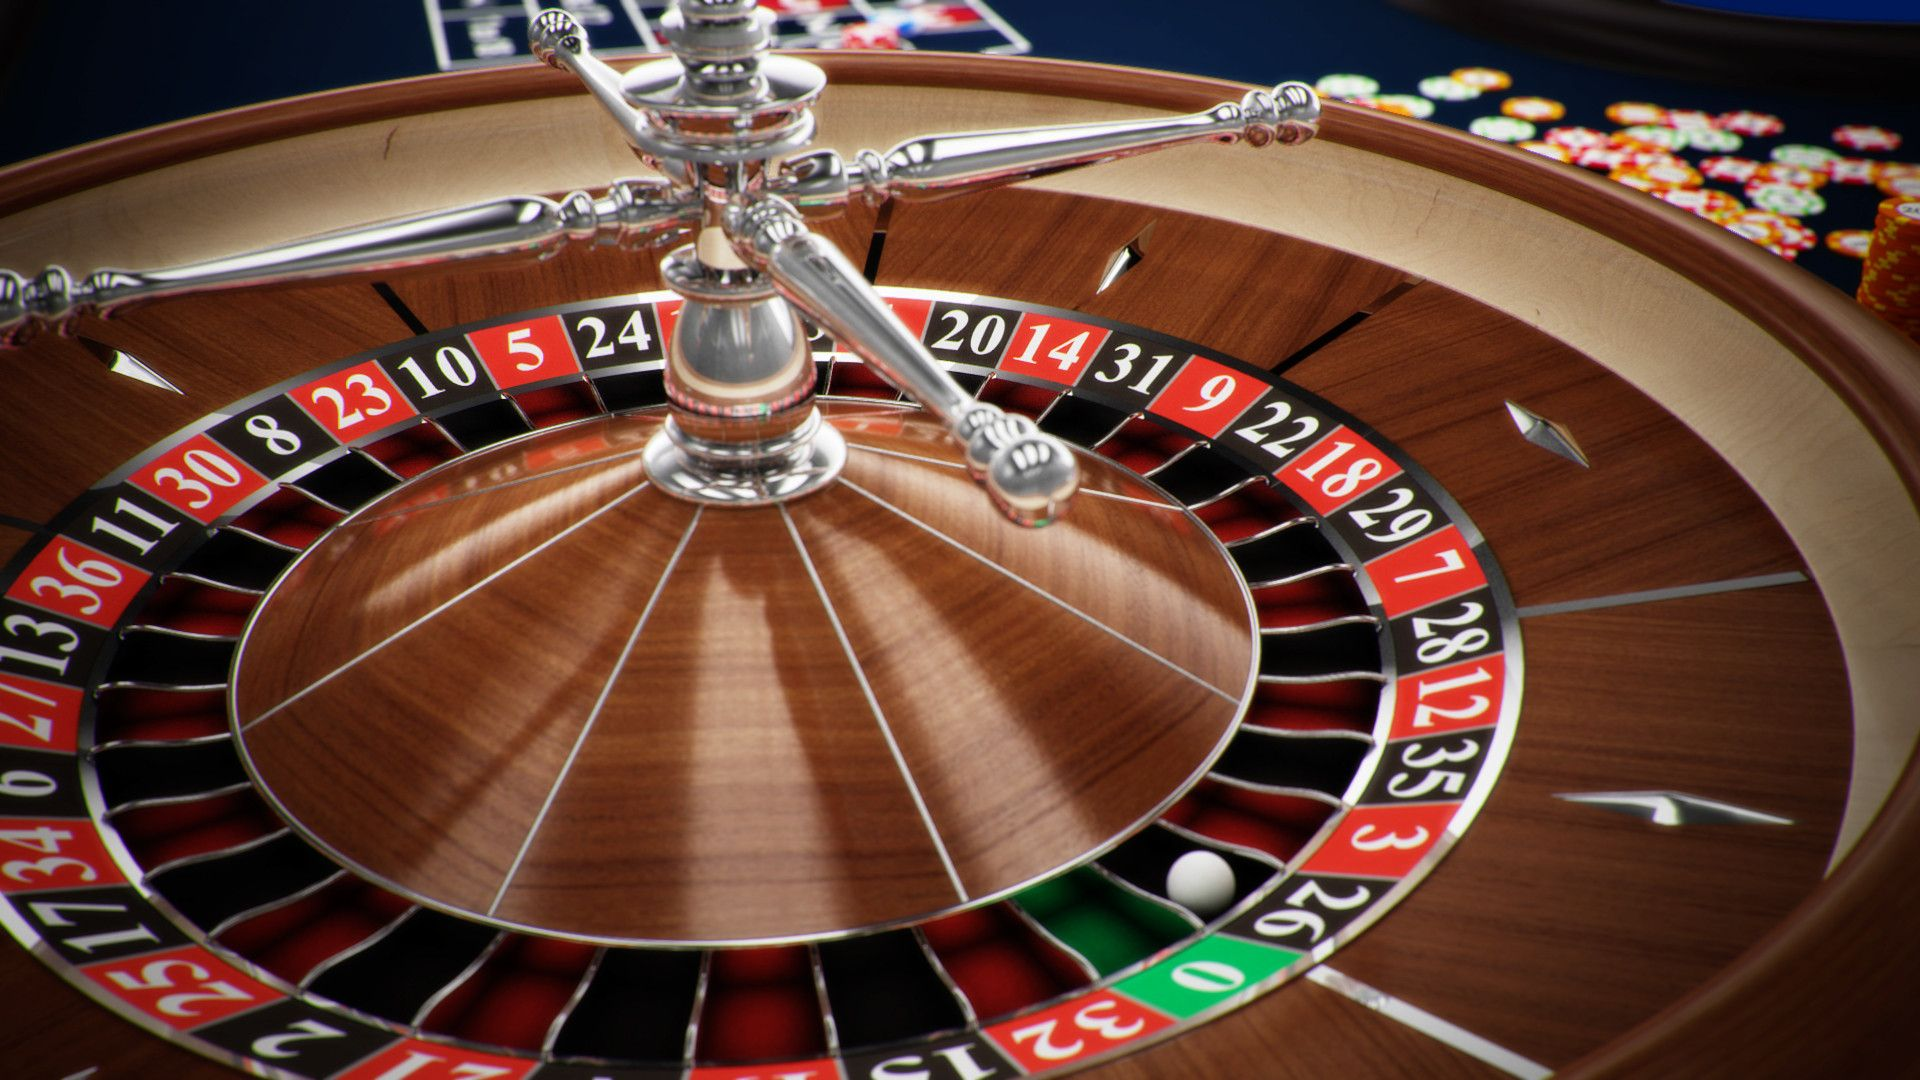 Reliable casinos with bets 24 hours a day at 123betting.